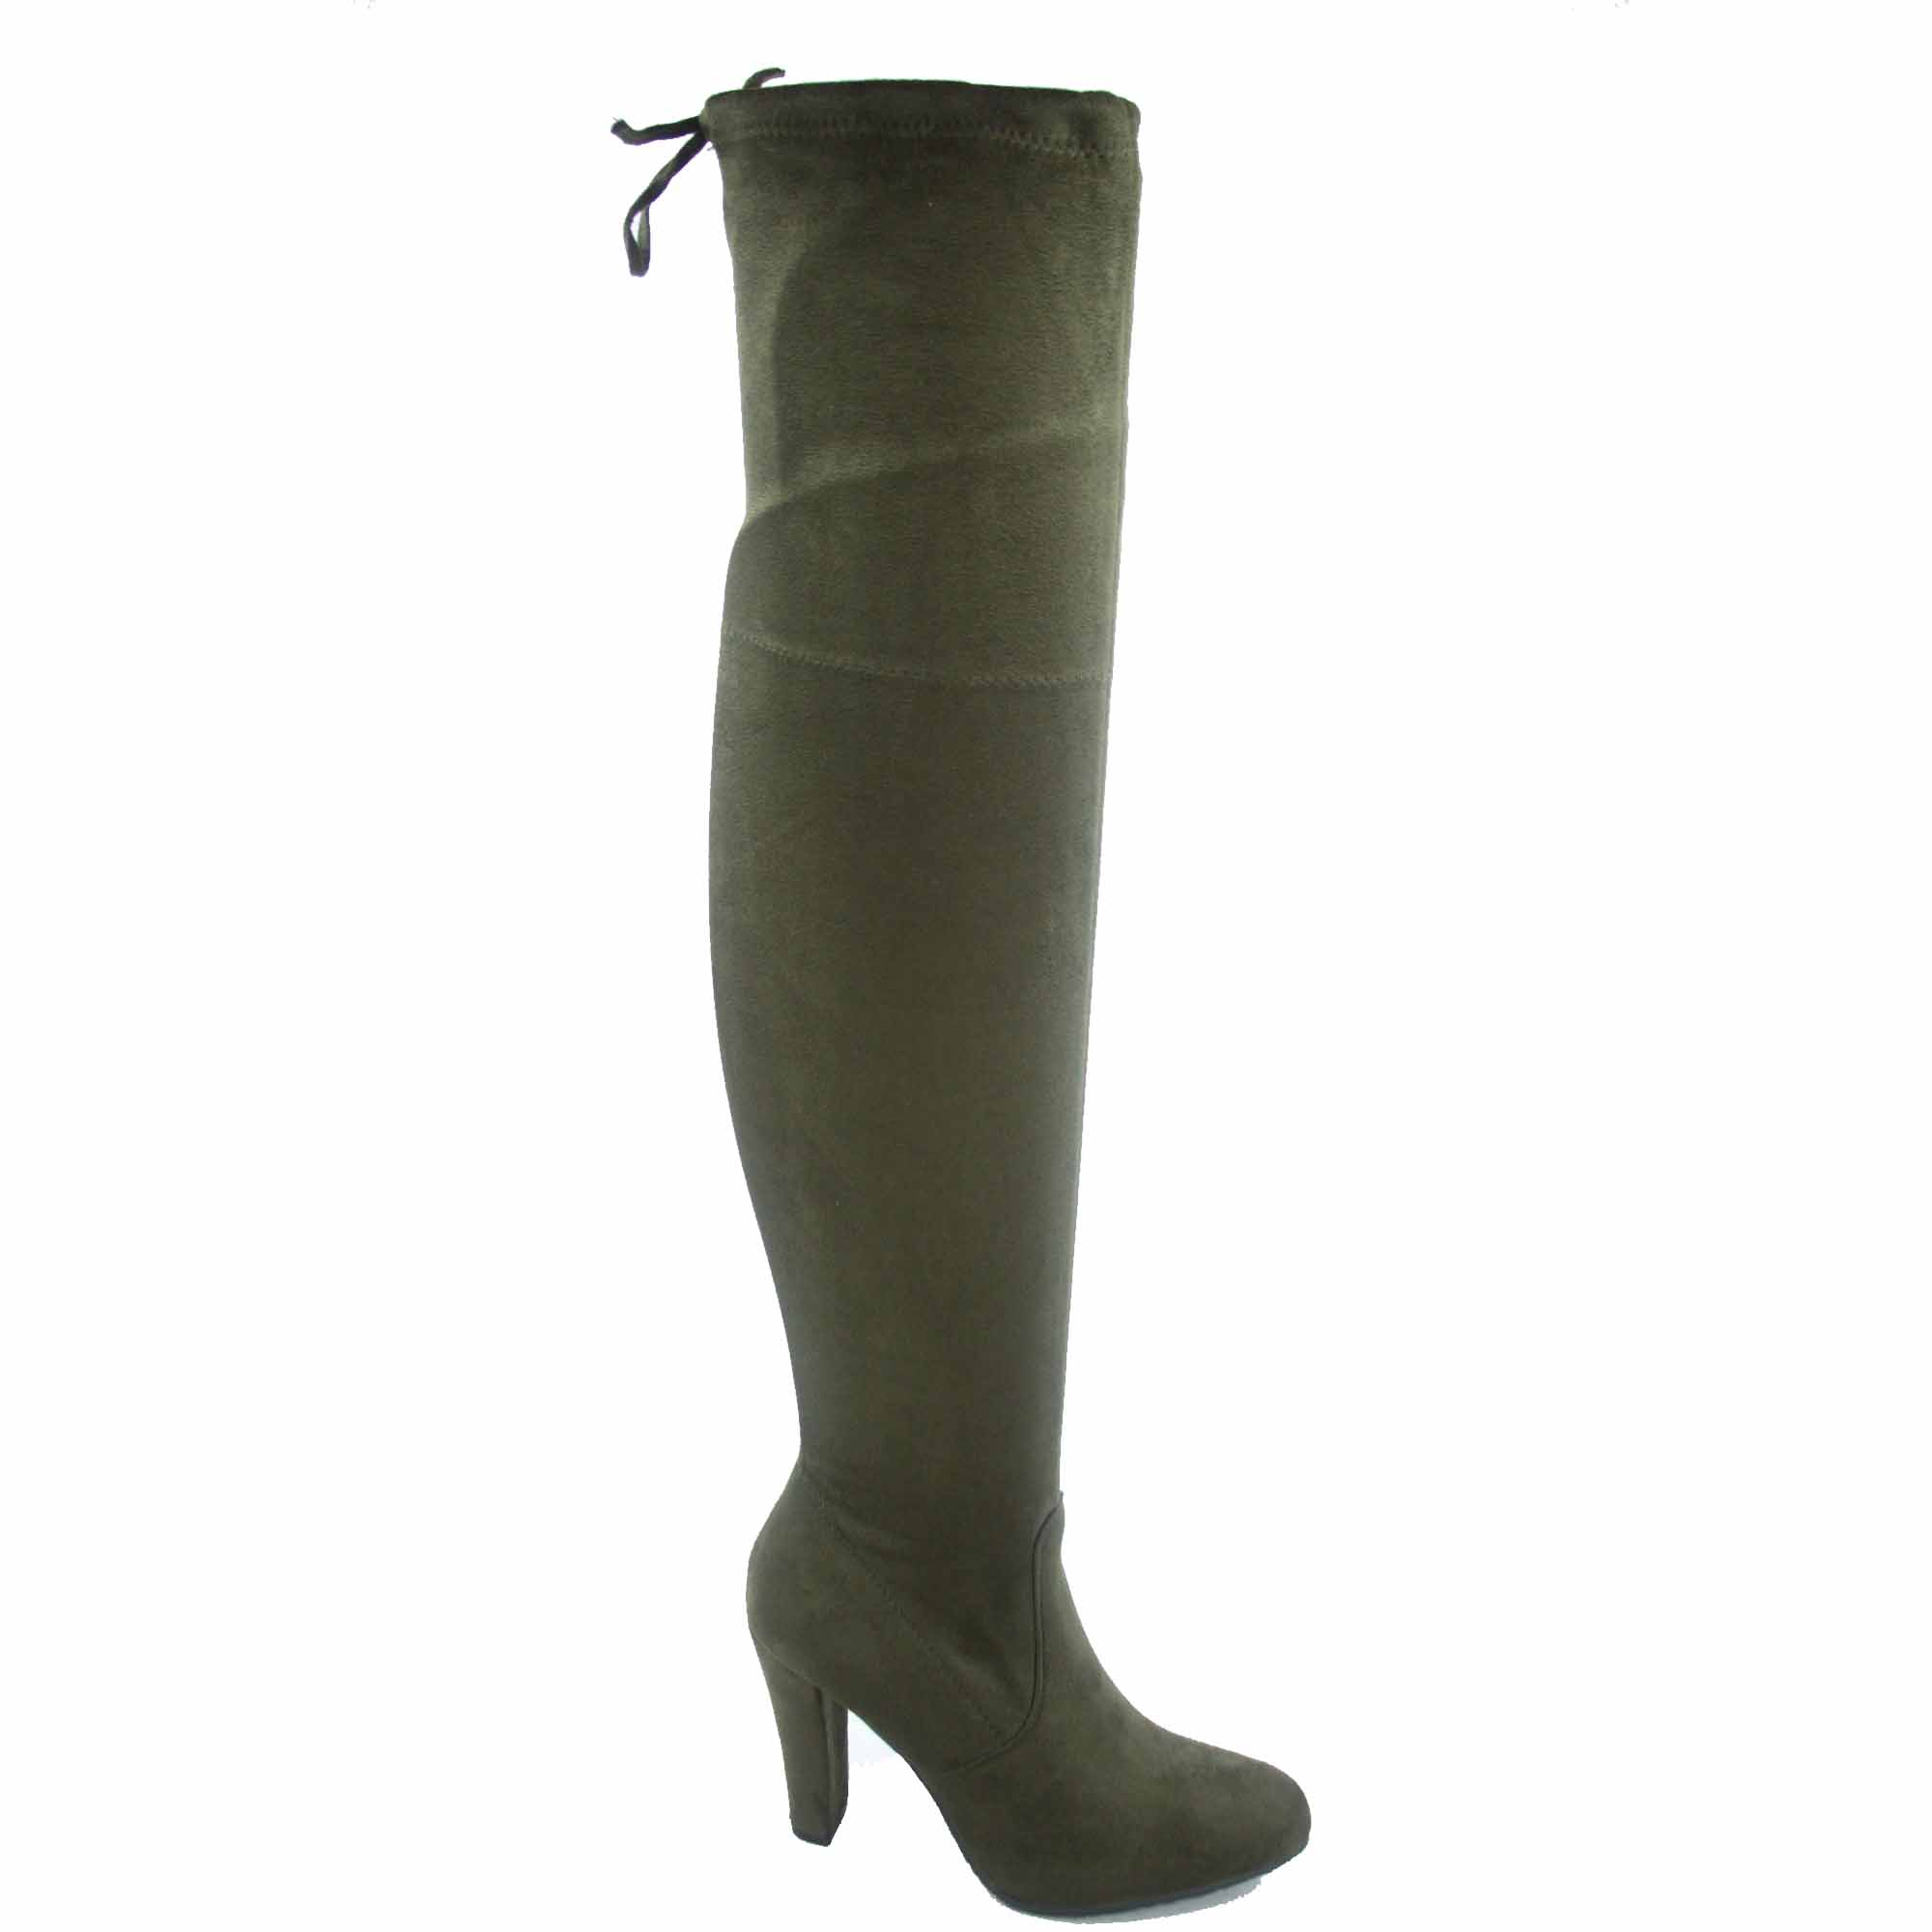 Dasia-H1 Women's Fashion Almond Toe Over The Knee Stretchy Snug Drawstring High Heel Boots